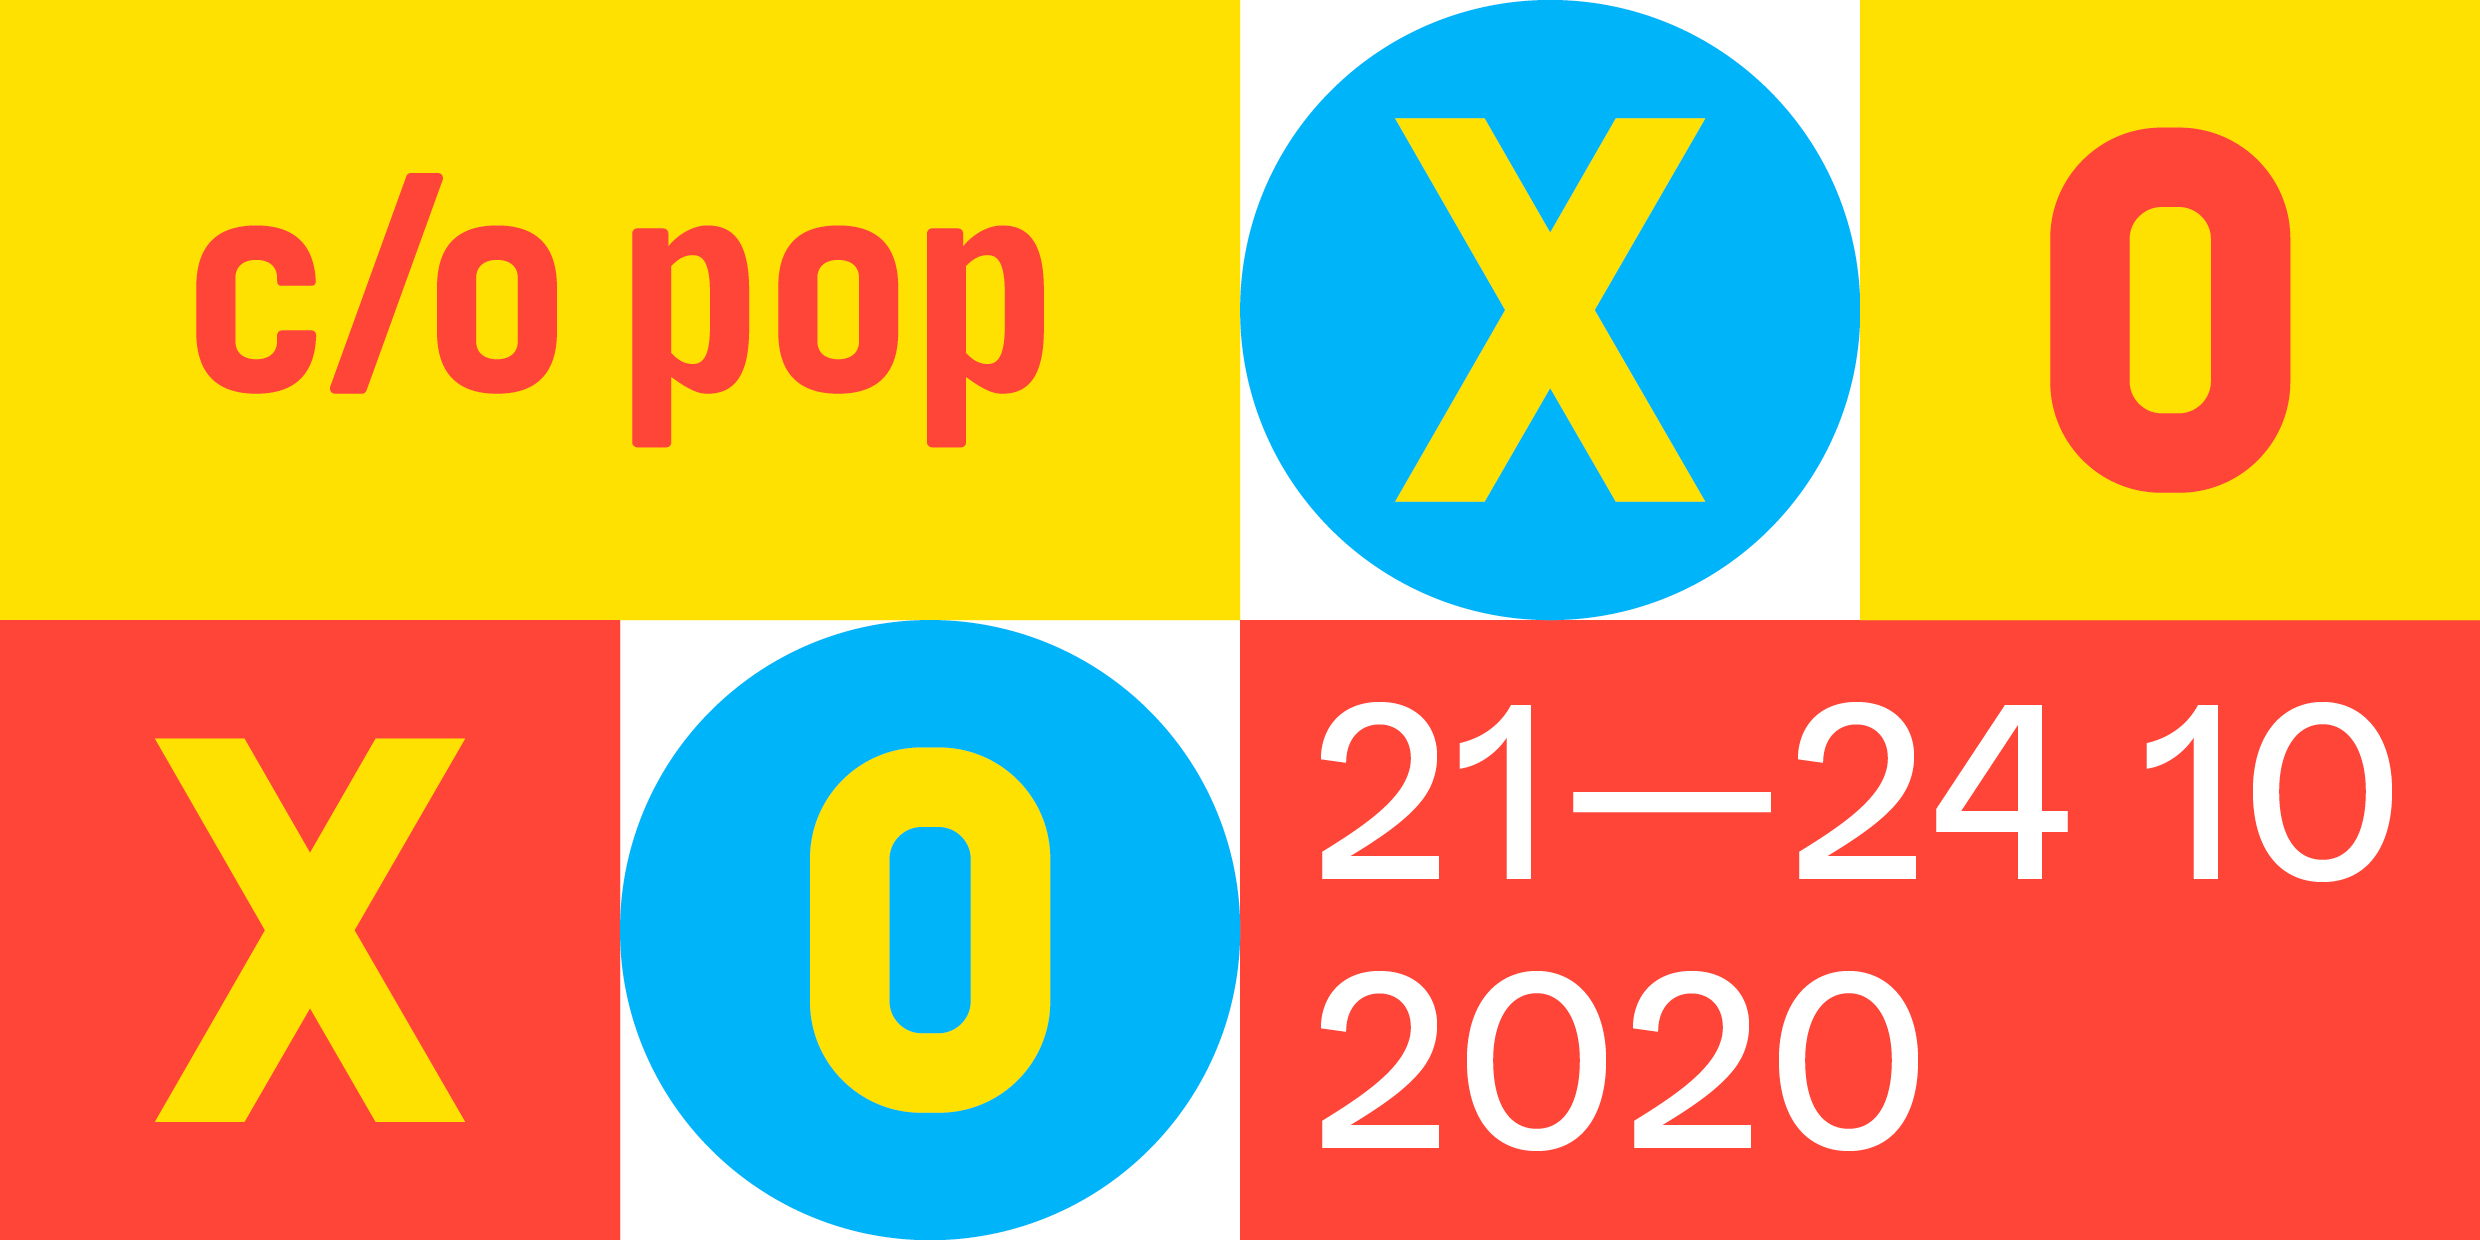 CO POP XOXO Header PM 300 RGB Fest